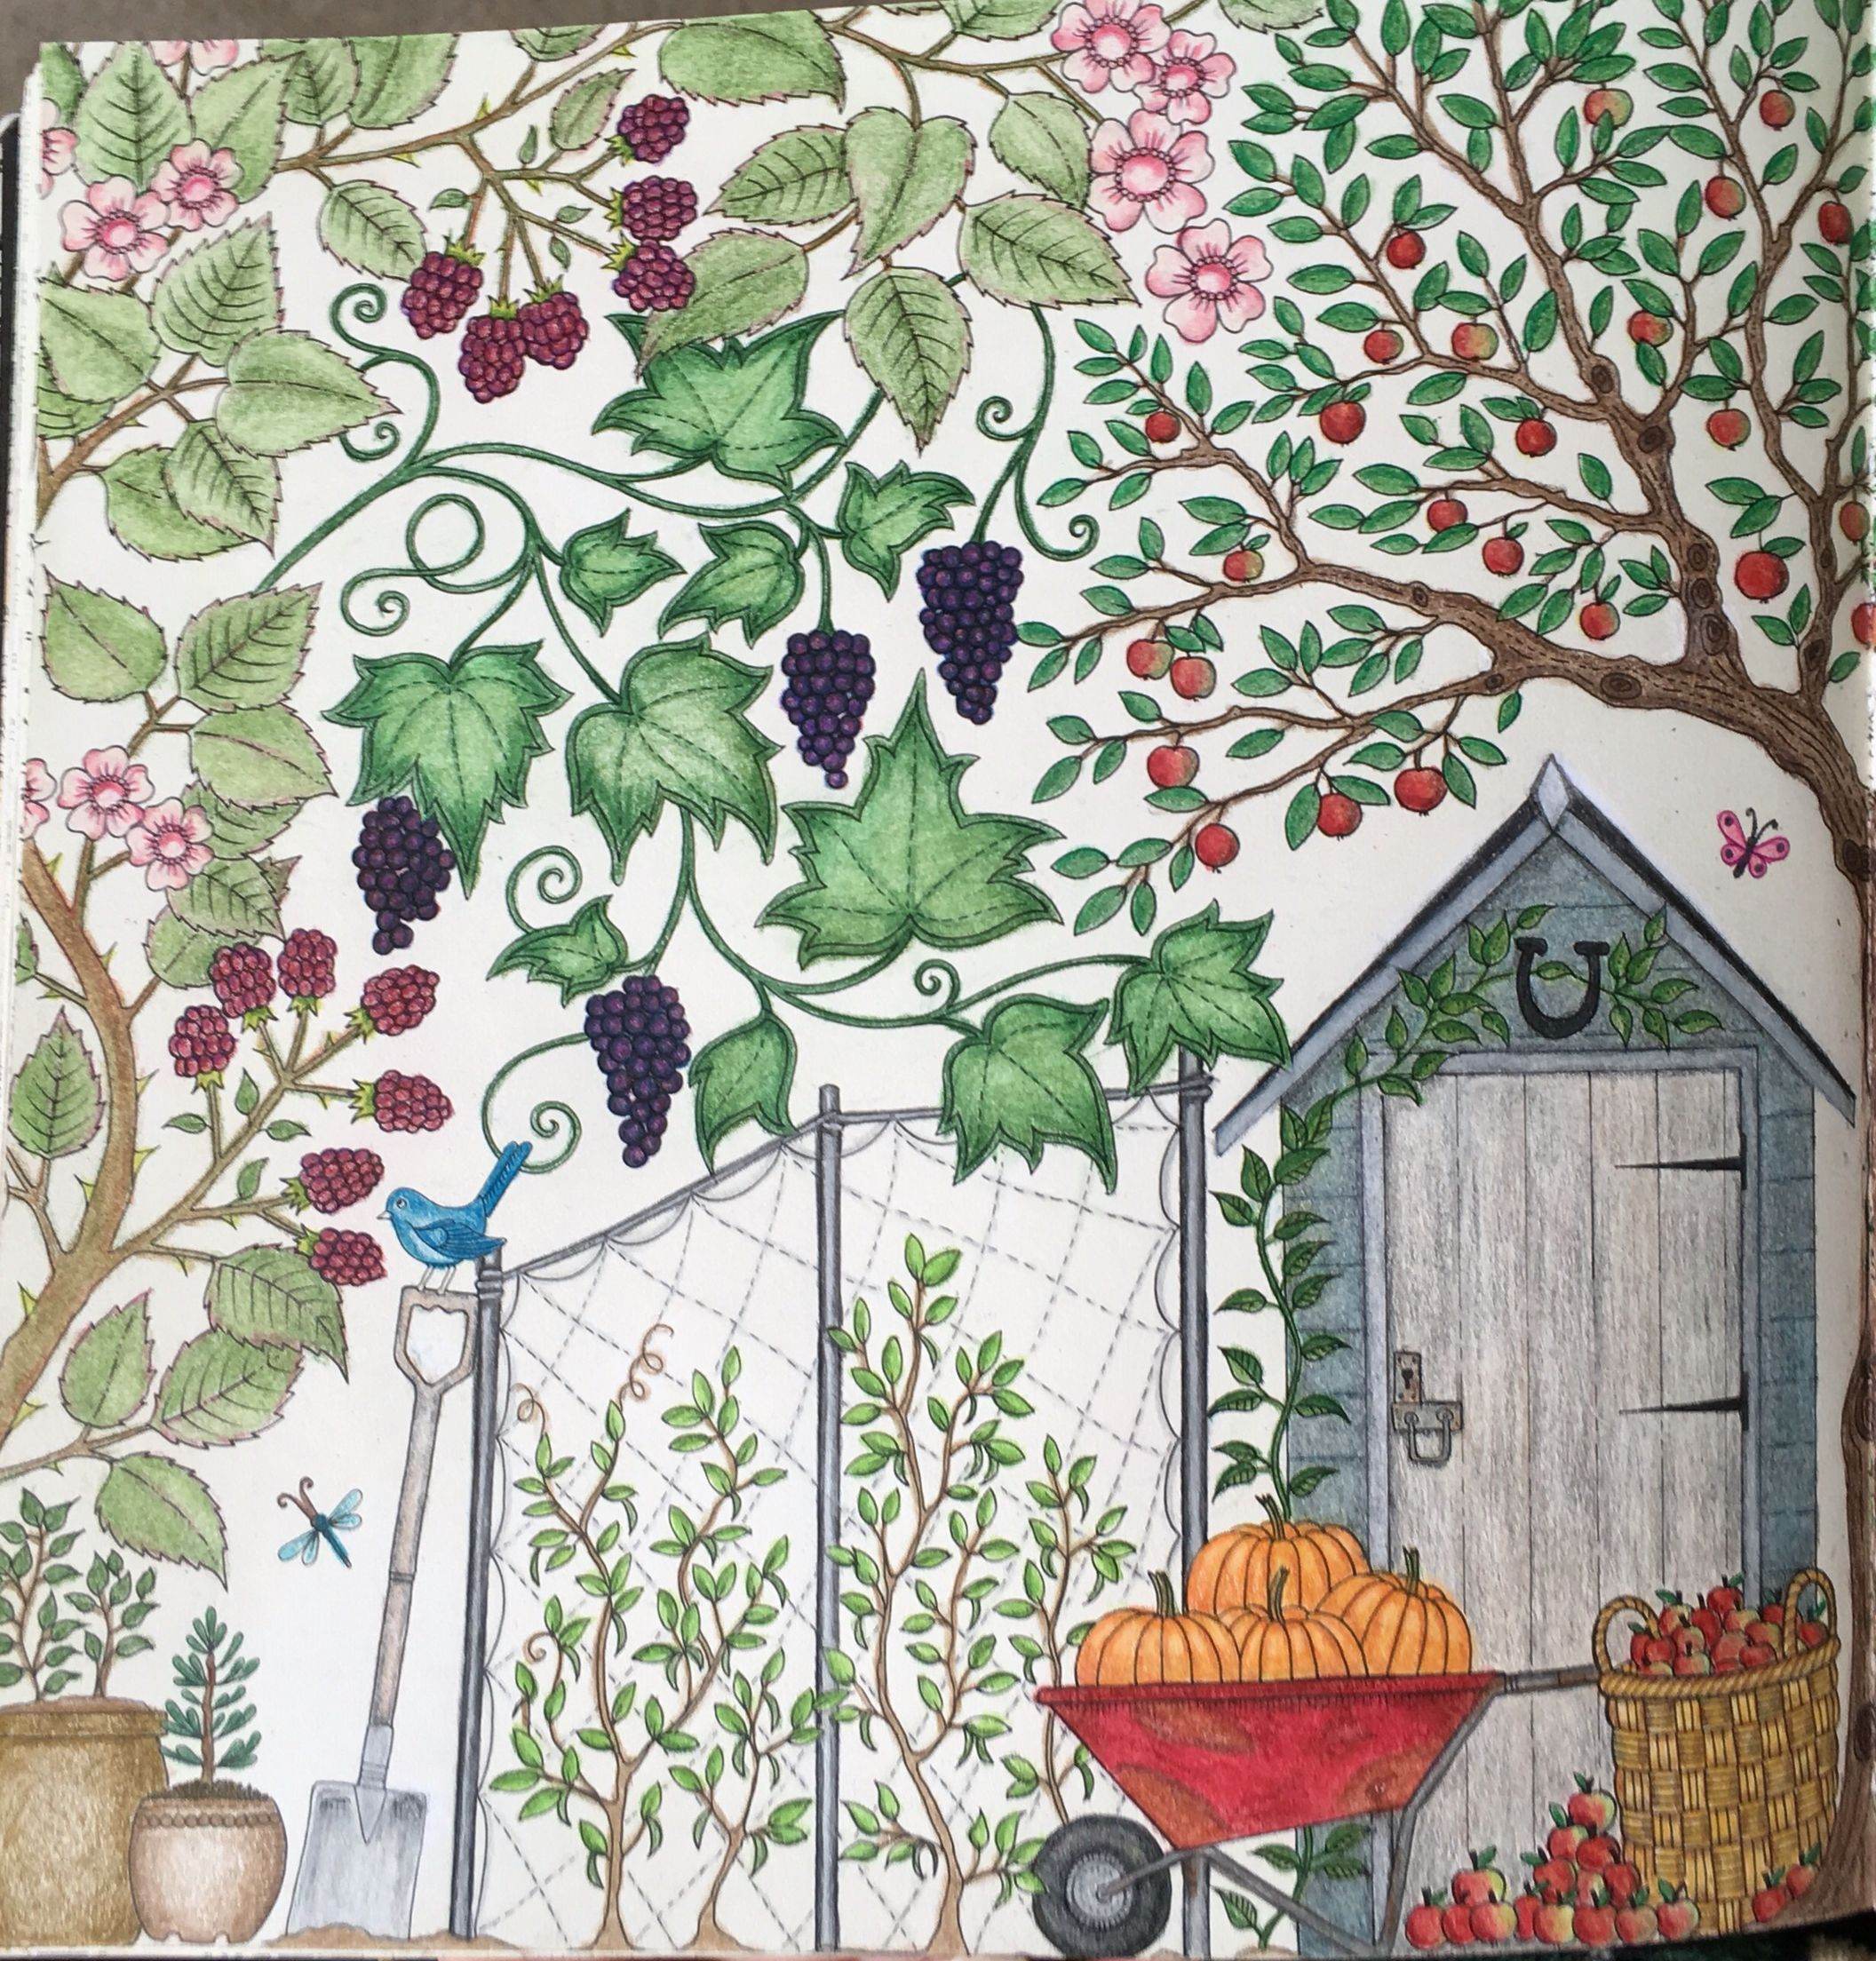 The secret garden coloring book finished - Secret Garden Coloring Book Prismacolor Colored Pencils